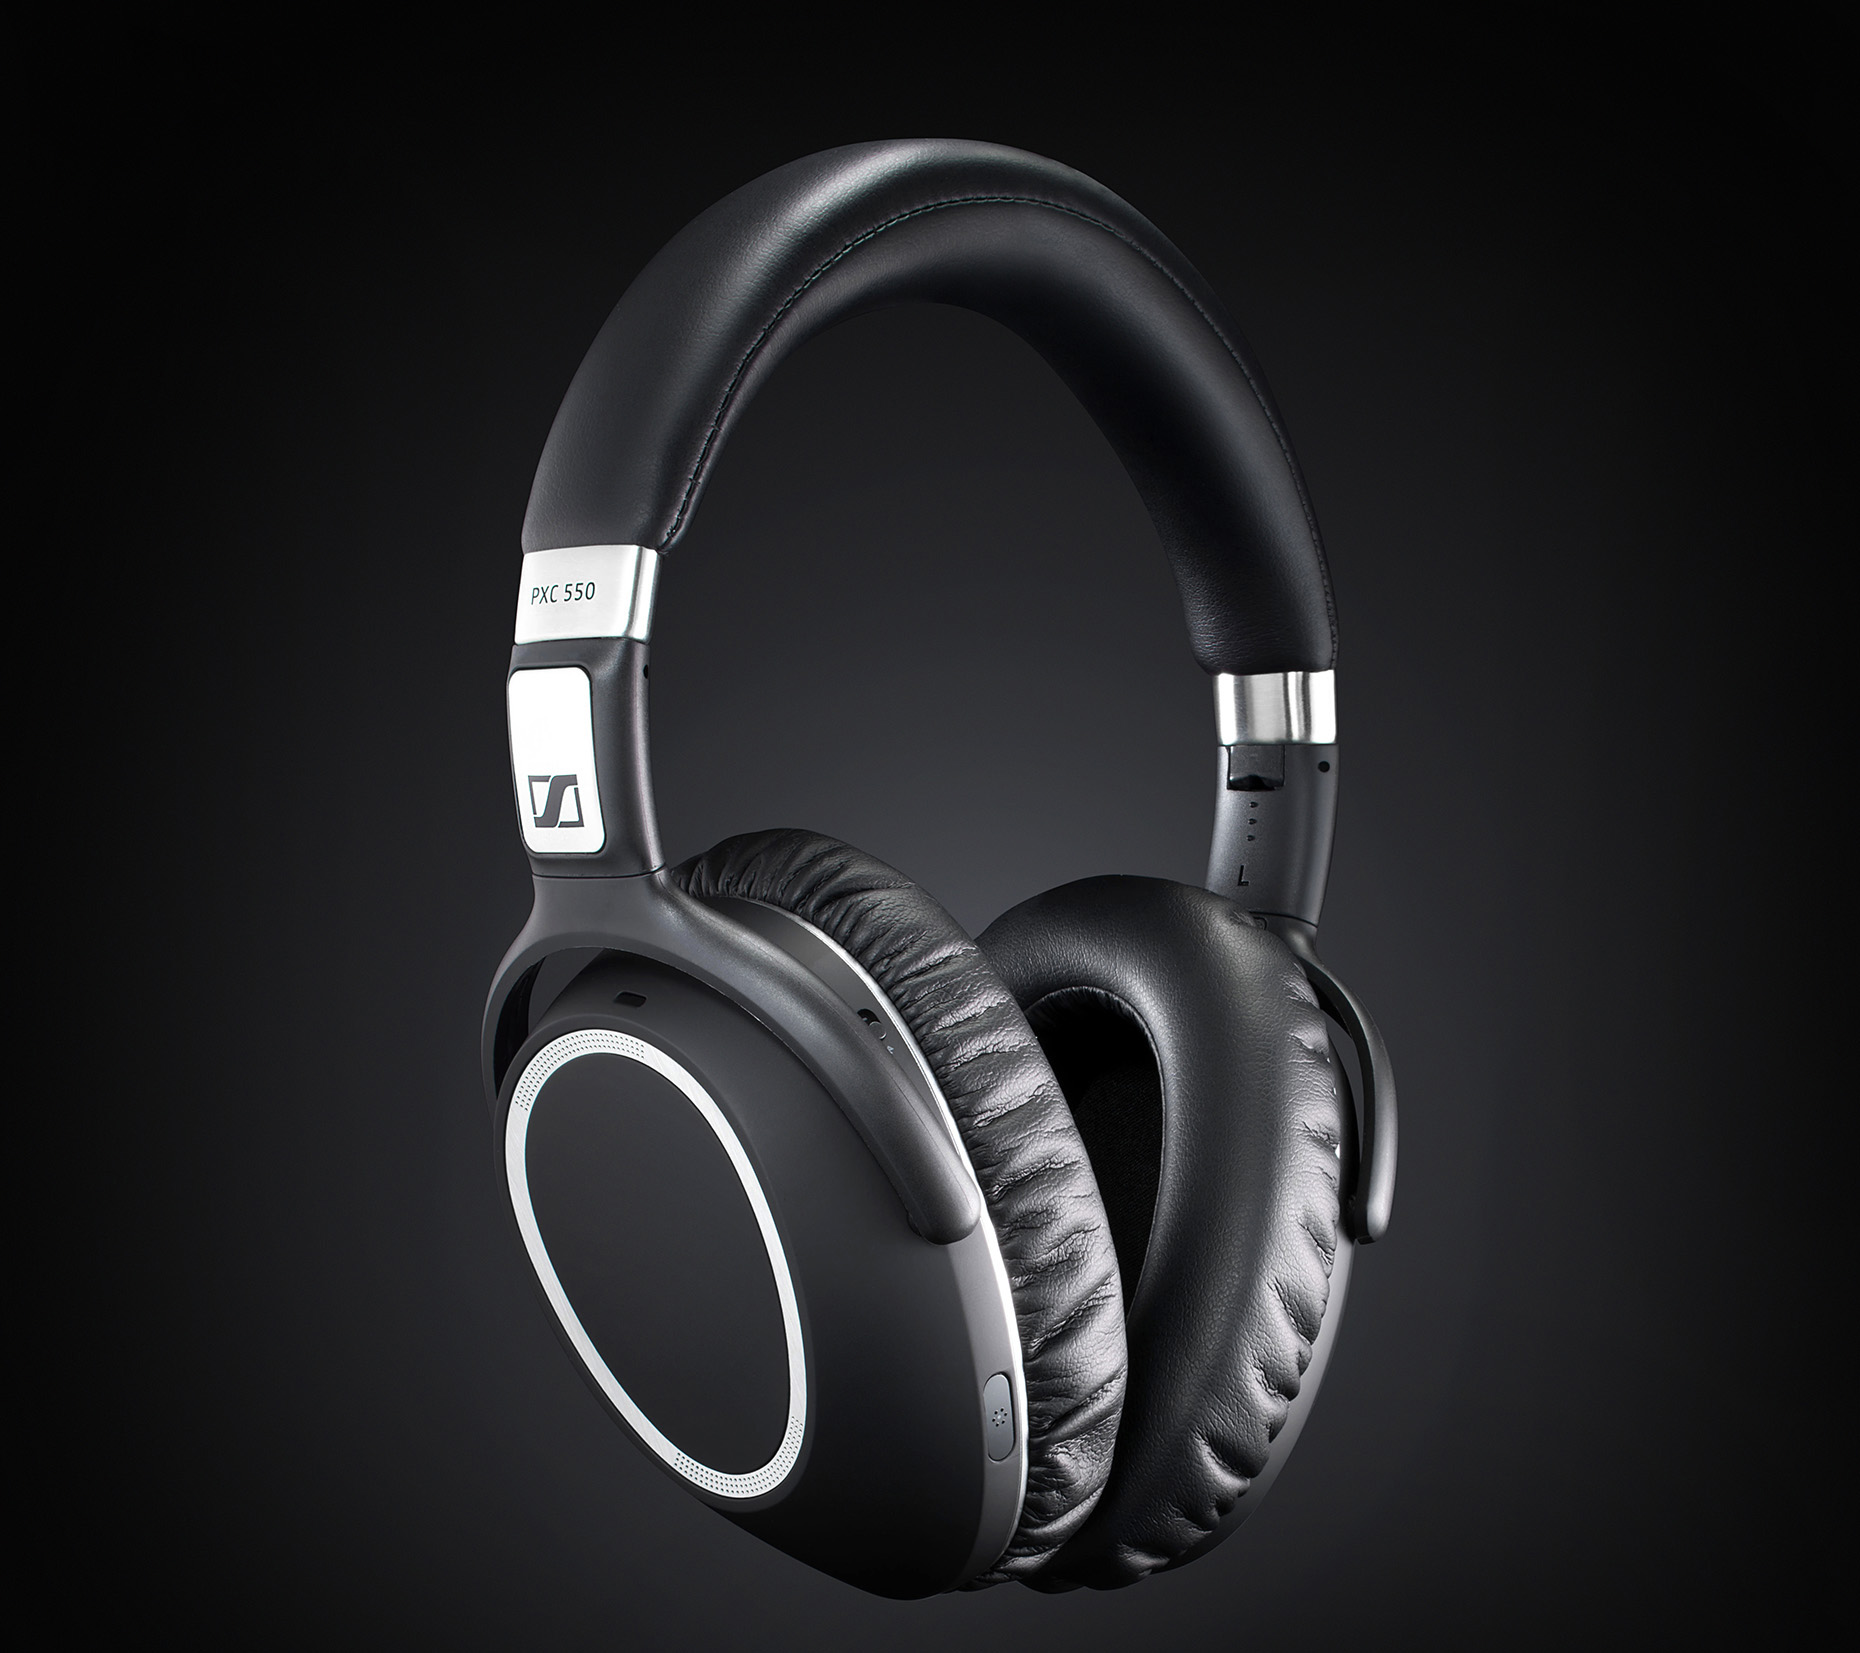 New-york-luxury-still-life-photography-Pro-headphones-on-black-